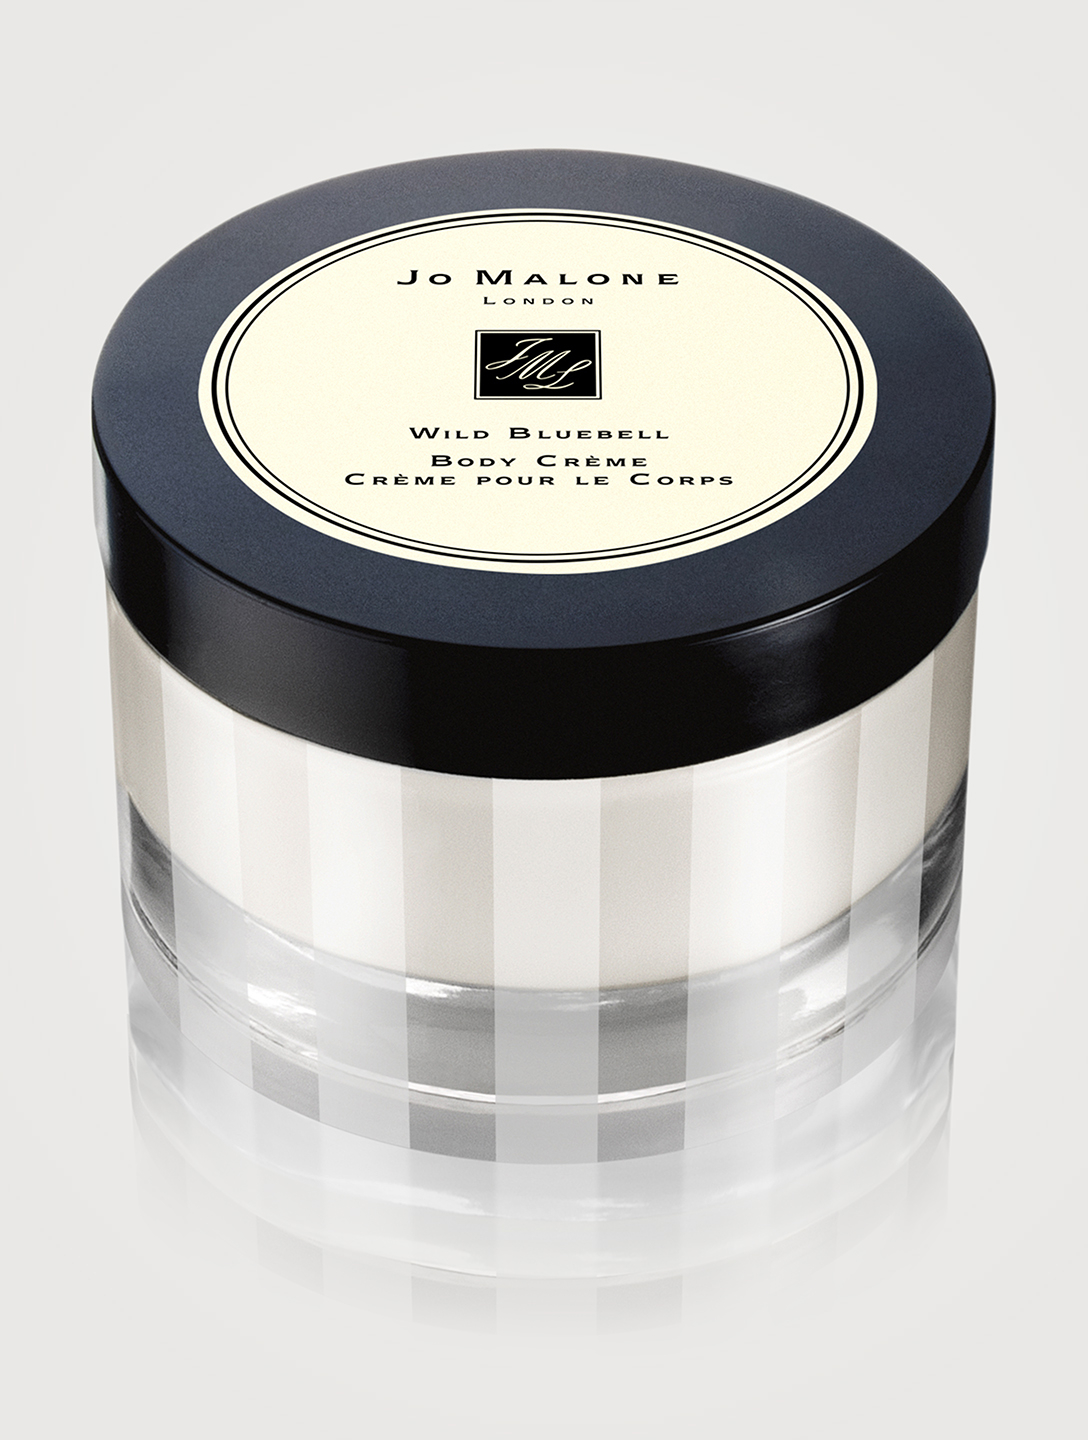 JO MALONE LONDON Wild Bluebell Body Crème Beauty